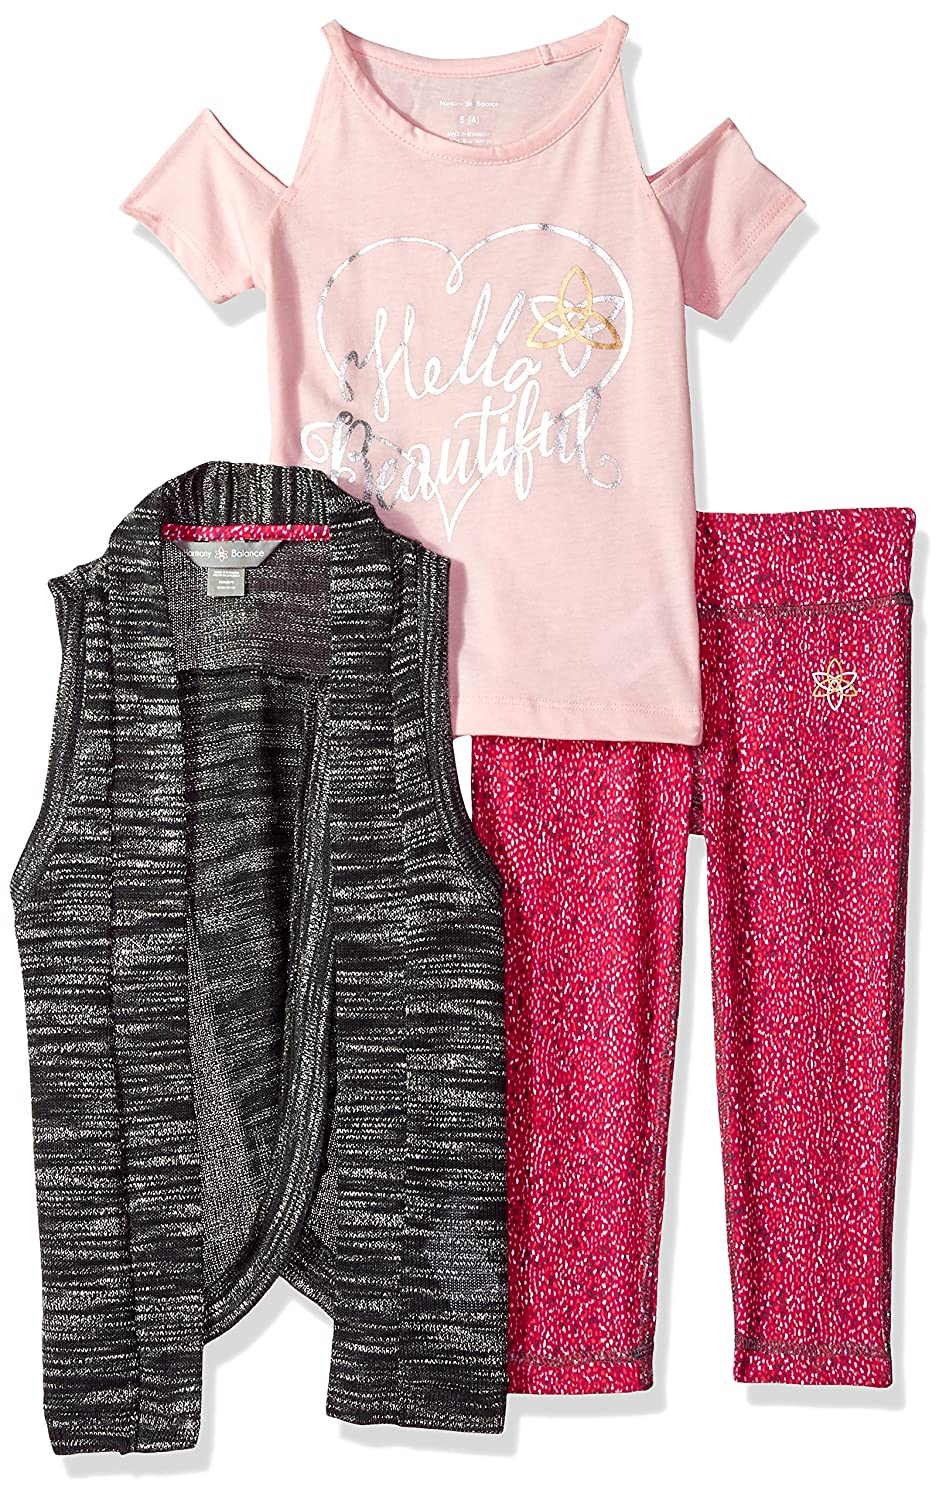 Tee and Legging Set Harmony and Balance Girls 3 Piece Vest